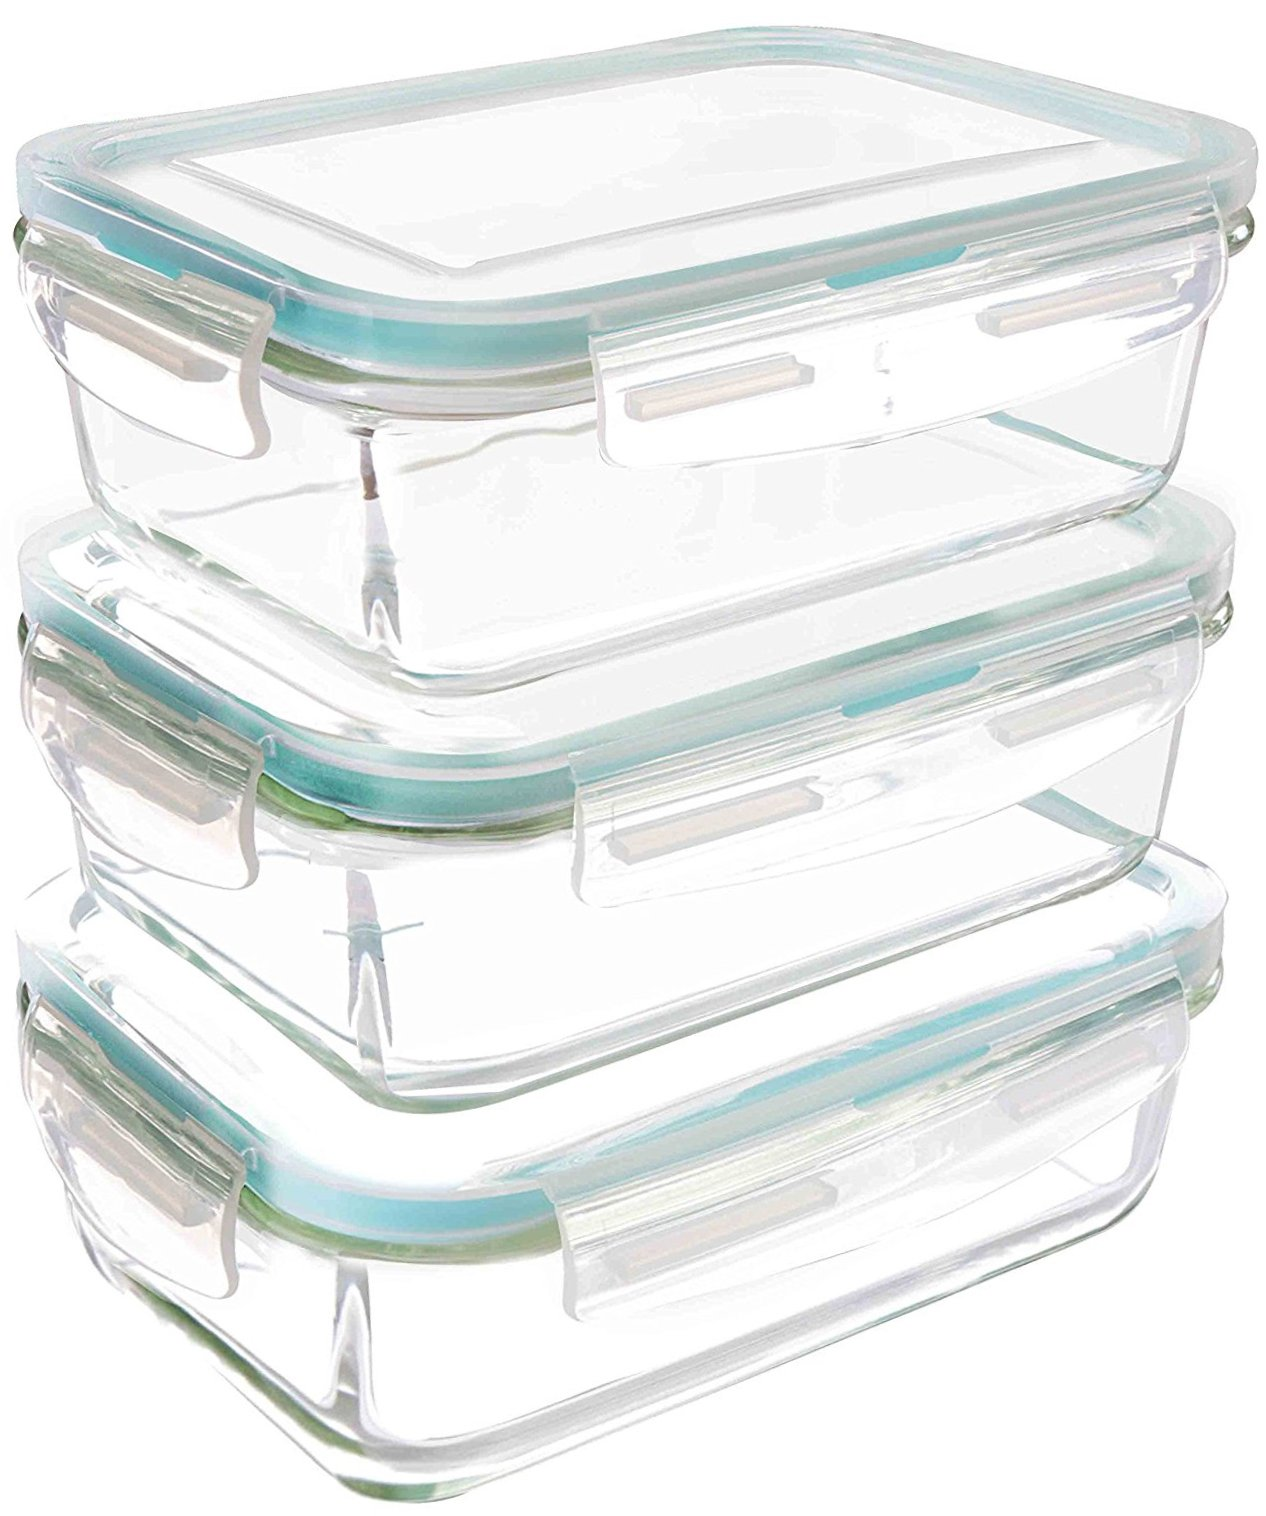 Utopia Kitchen Glass Containers for Food Storage with Lids (3-Pack, 28Oz) - Food Prep Airtight Containers with Lids - BPA Free and FDA Approved Containers by Utopia Kitchen